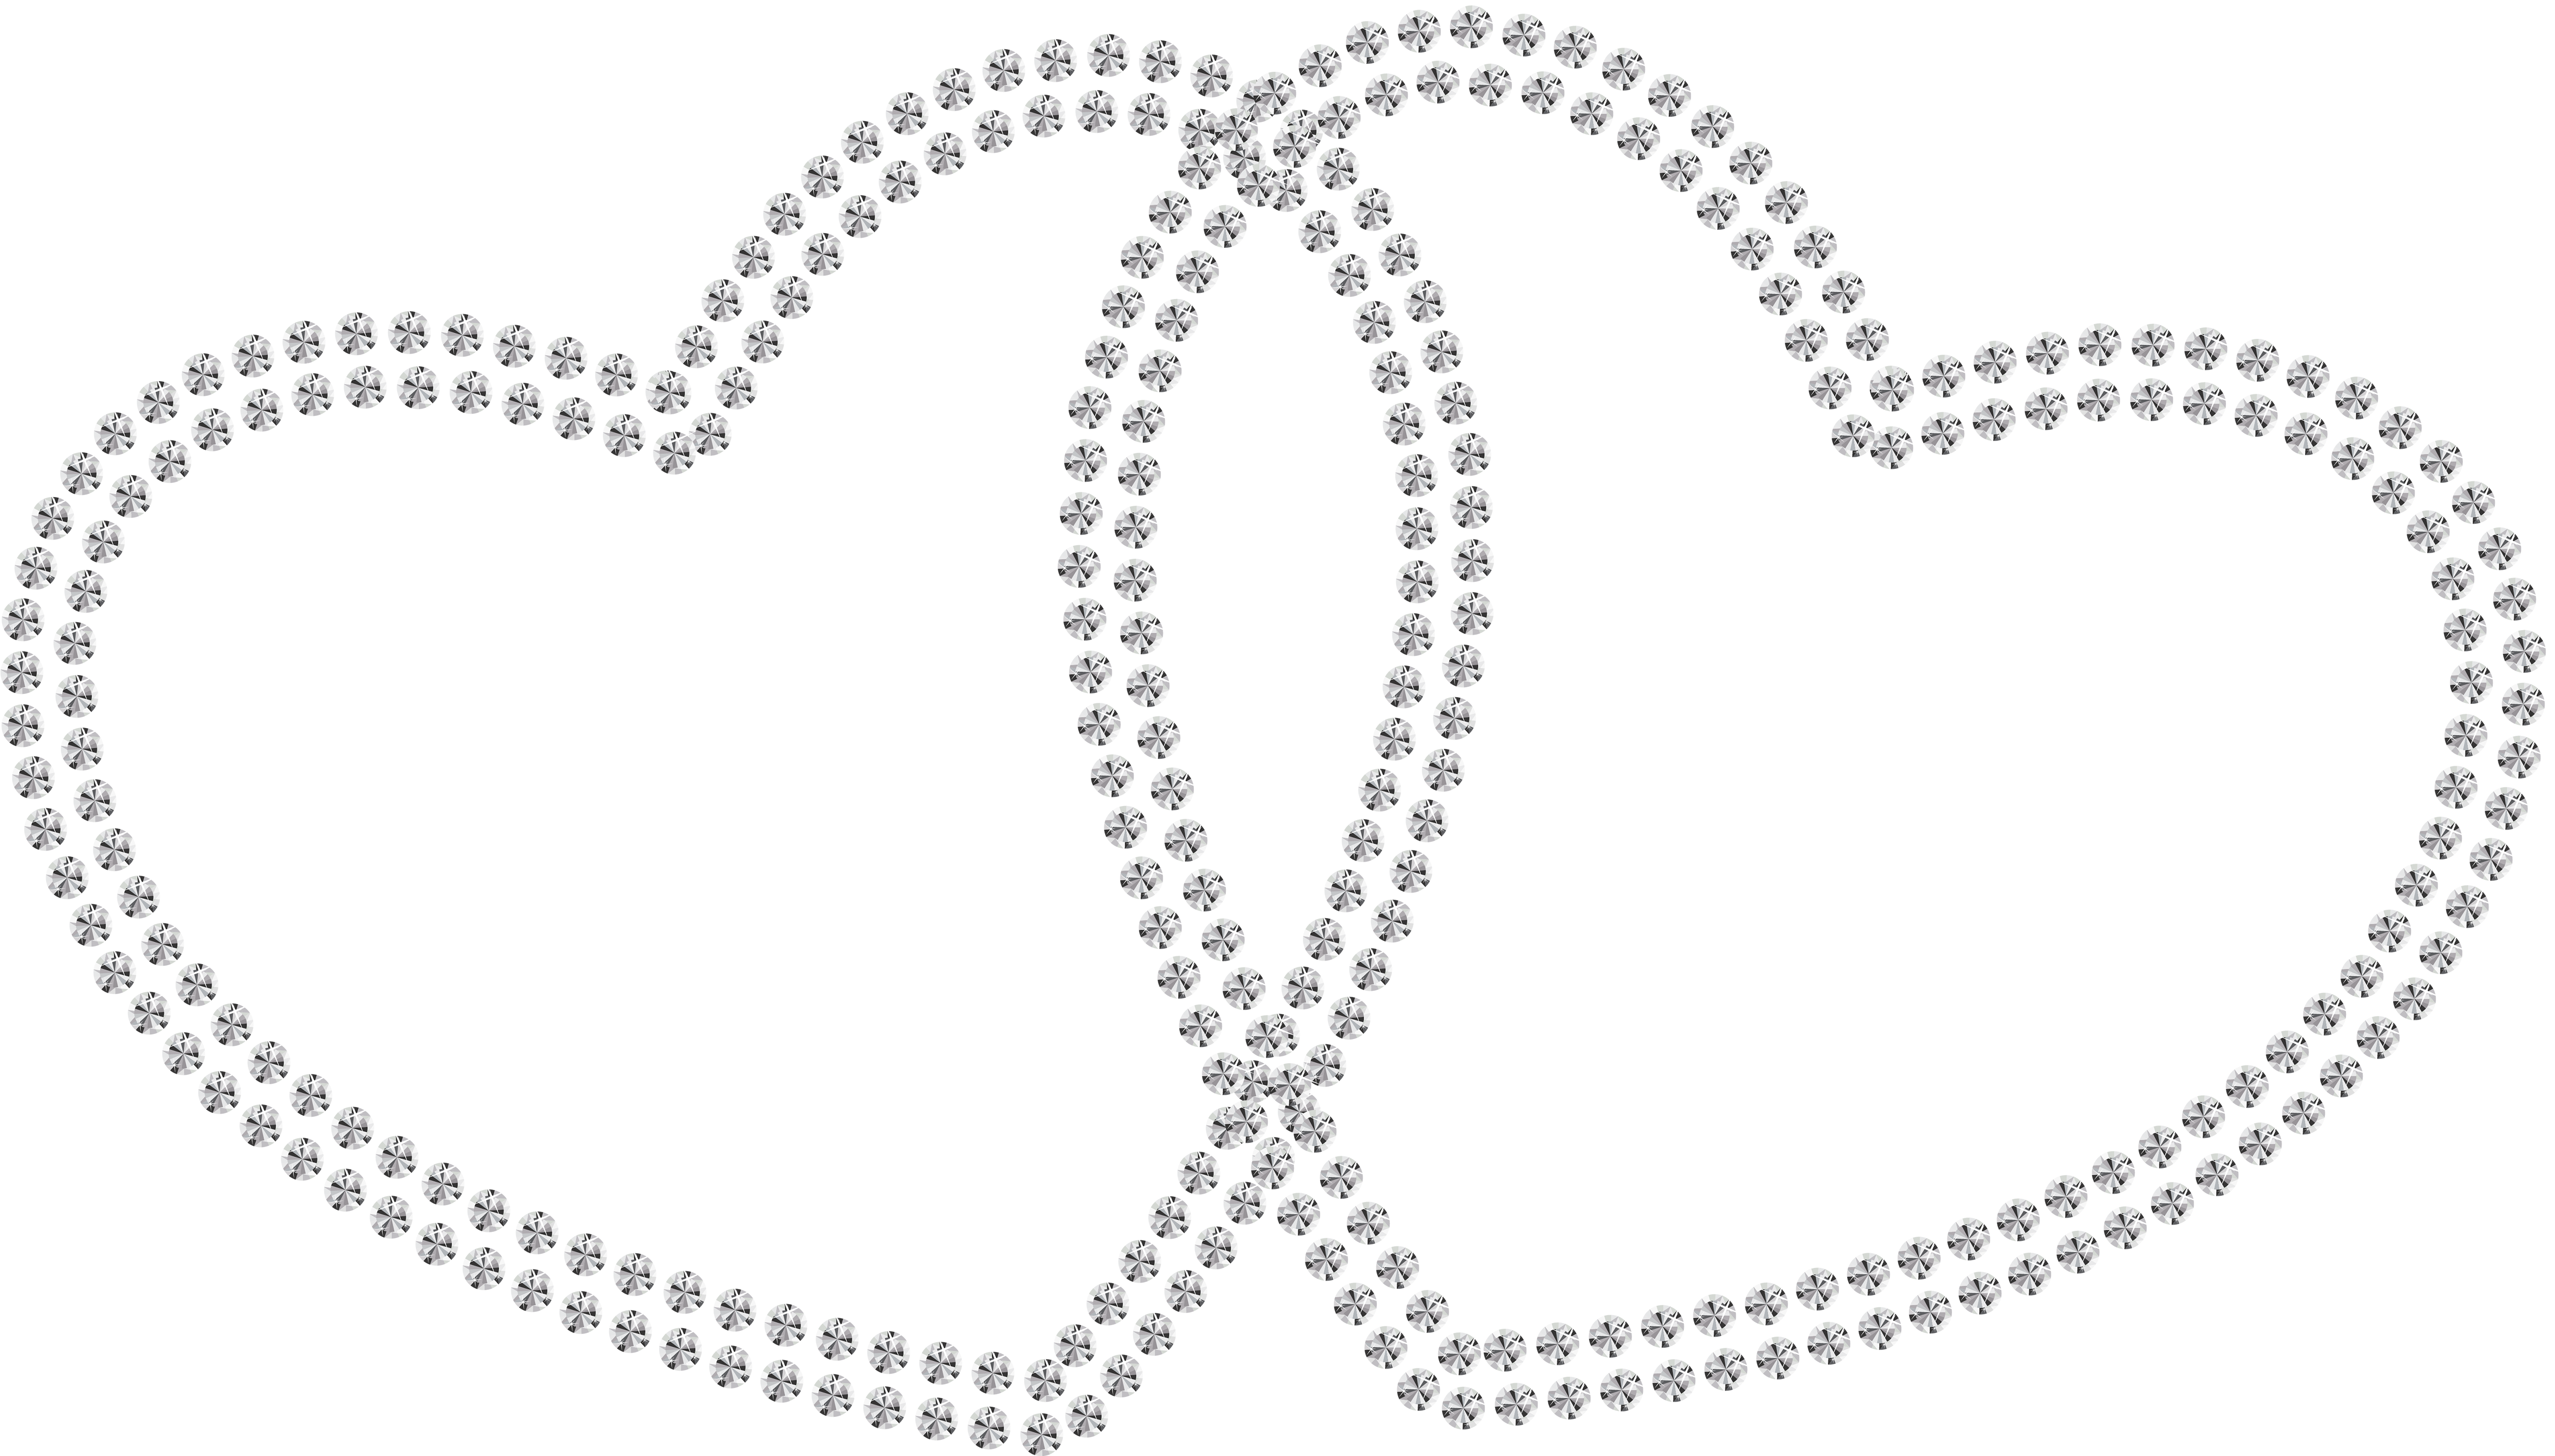 Diamond heart png. Download s hearts image